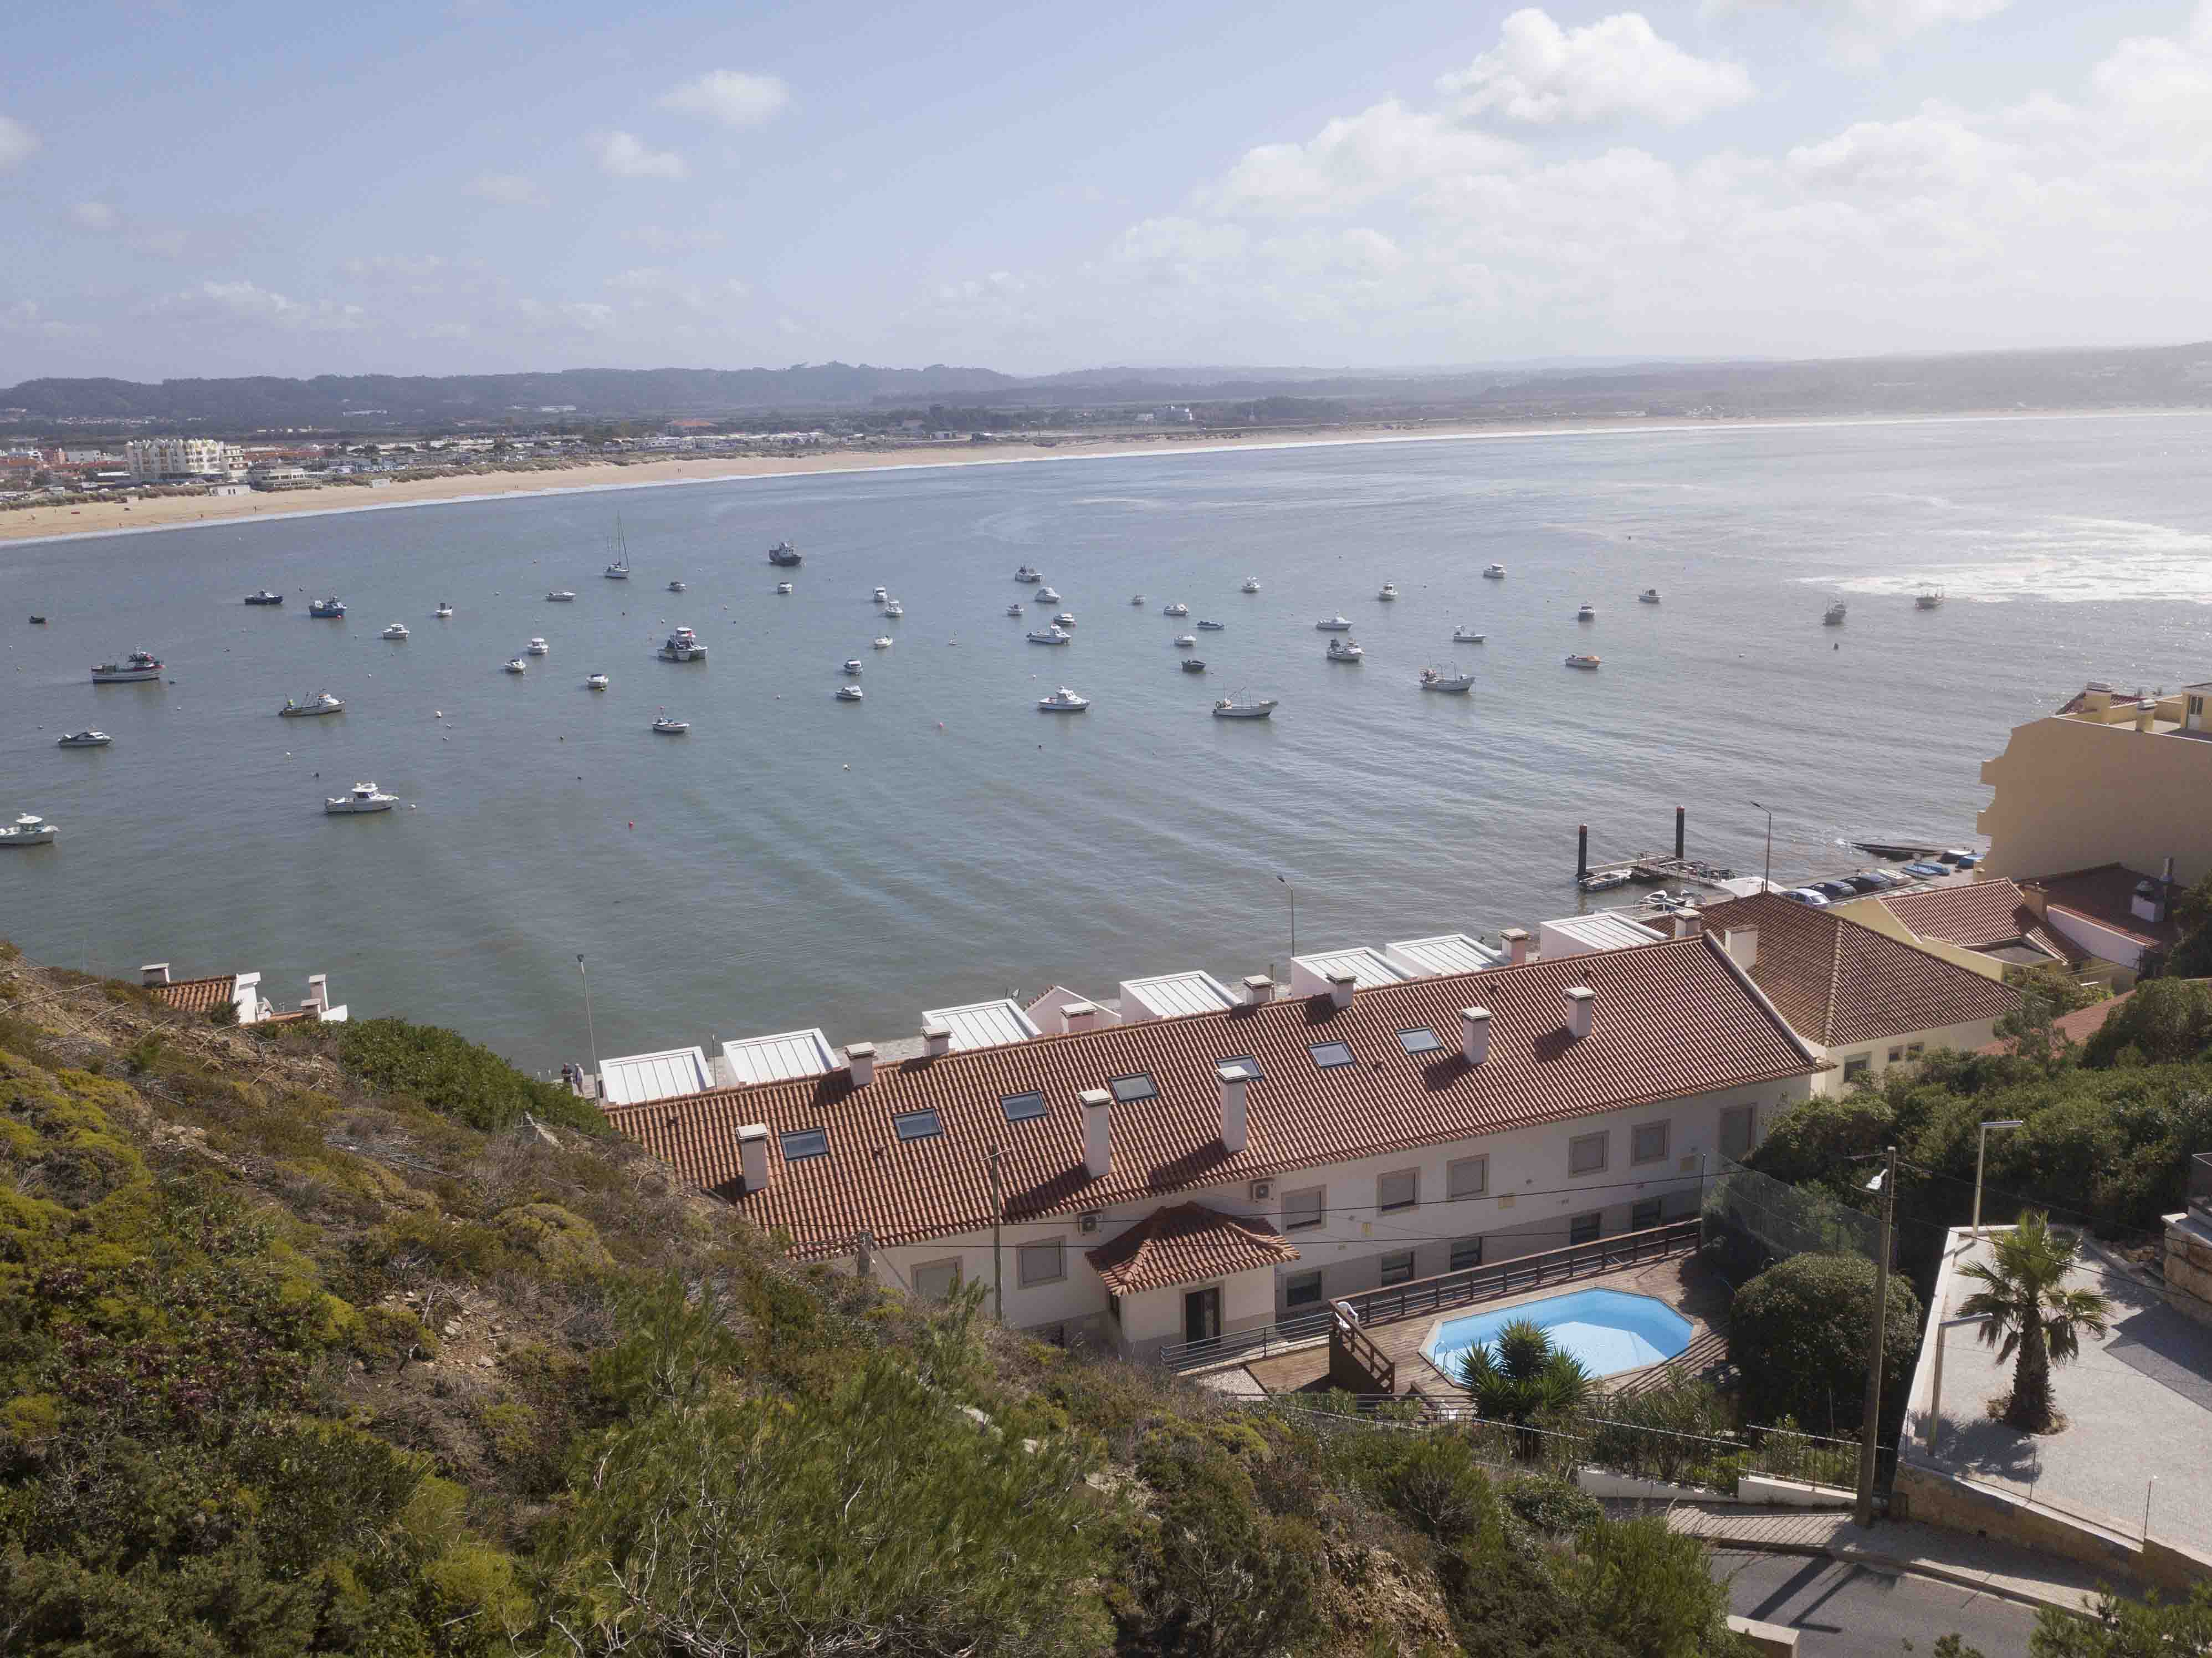 22-cais-sao-martinho-porto-silver-coast-new-buil-construction-portugal-for-sale